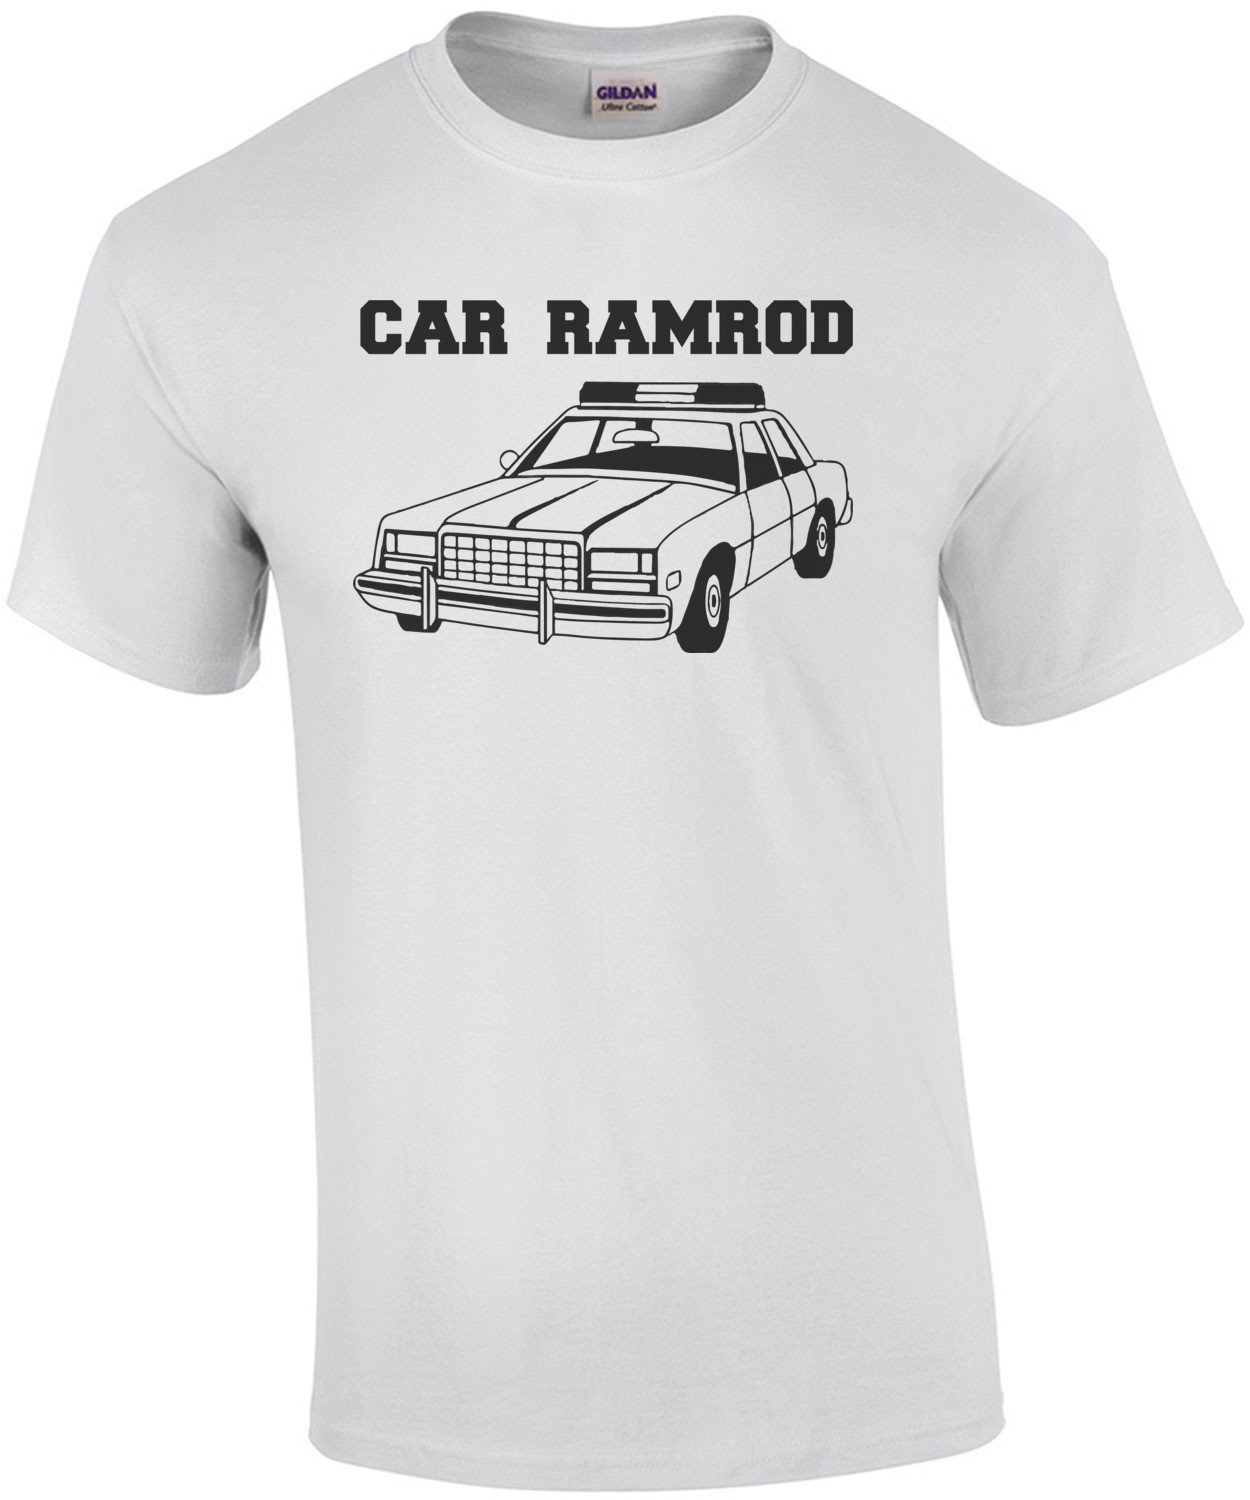 Car Ramrod - Super Trooper T-Shirt